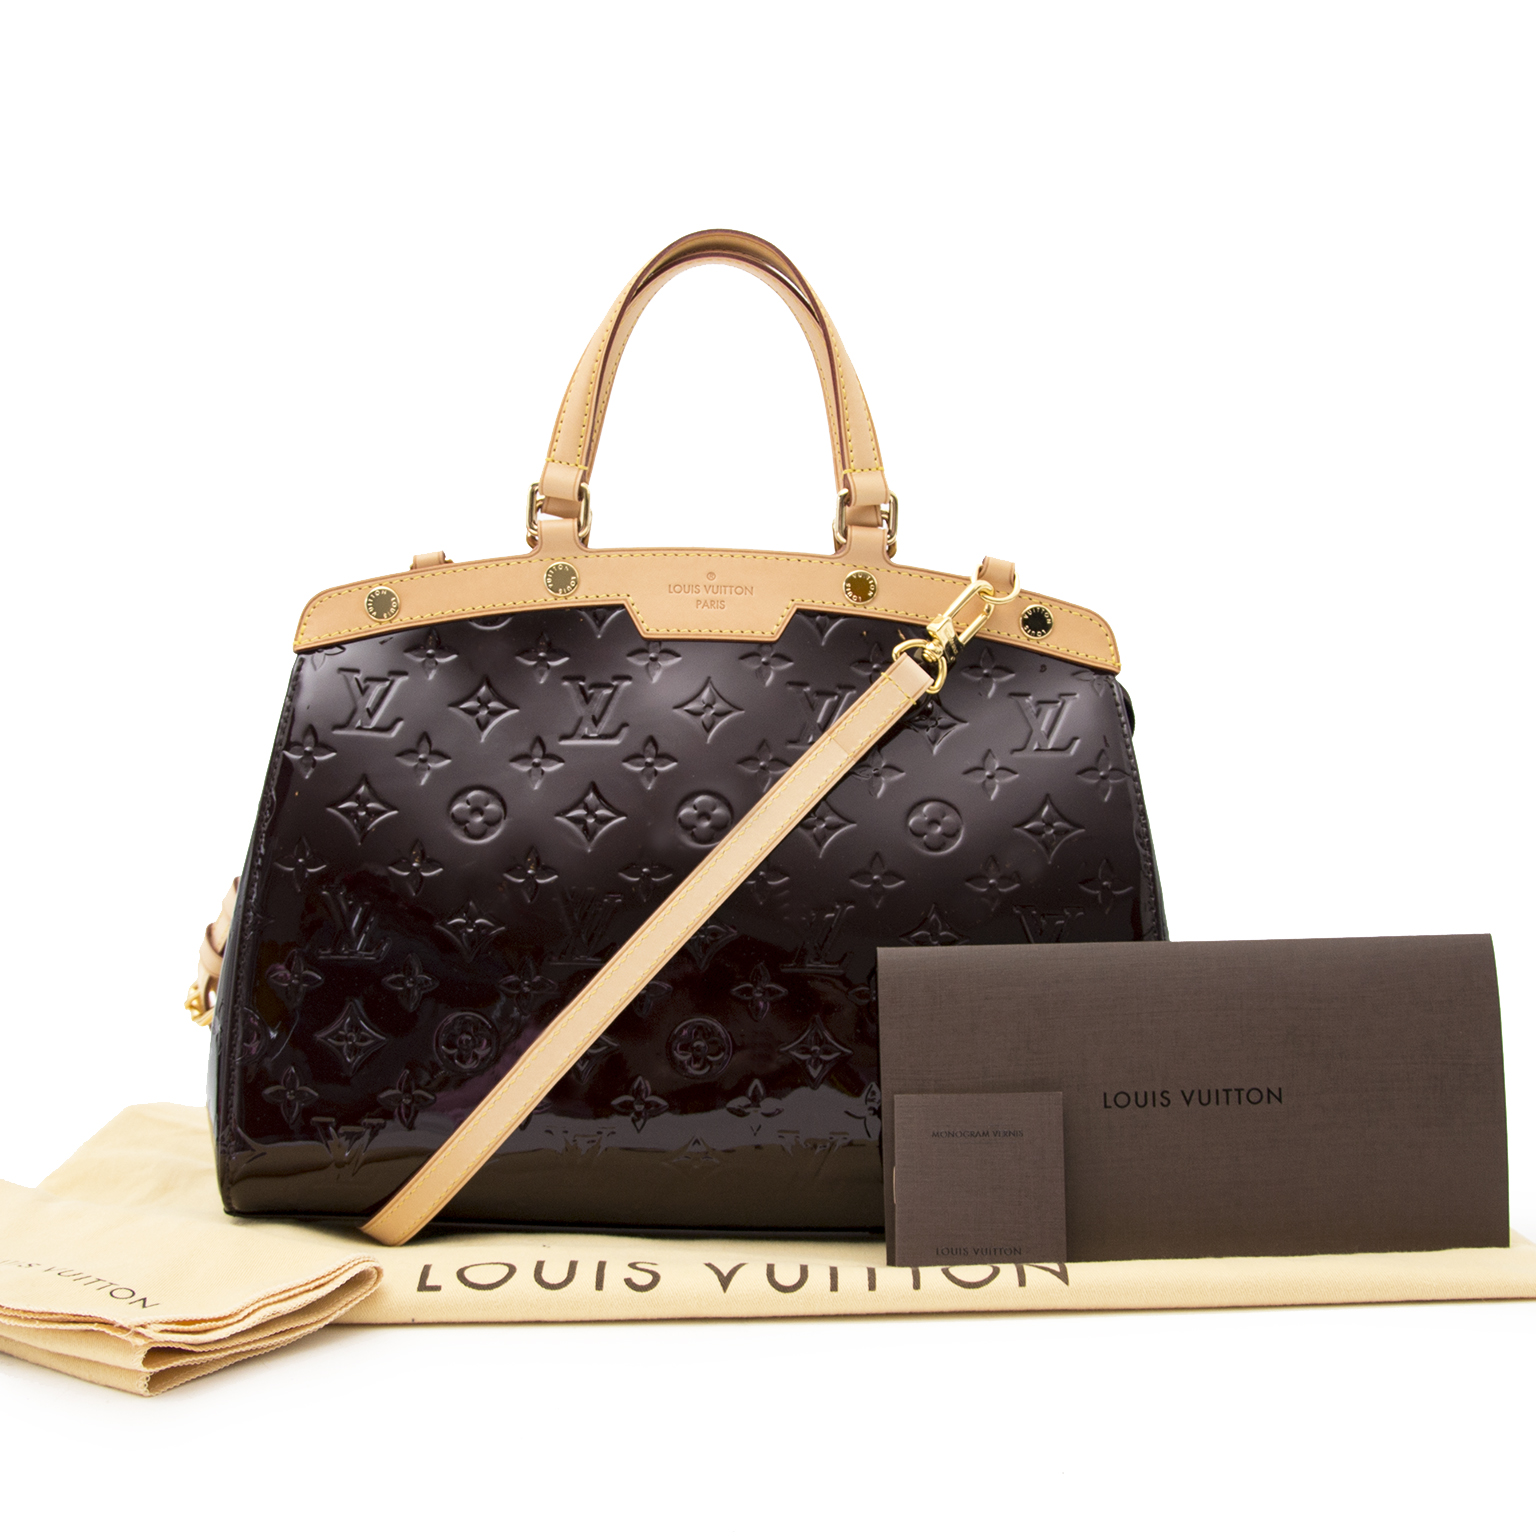 18954aab429 ... Buy and sell your preloved designer bags for the best rates online at Labellov  luxury · Louis Vuitton